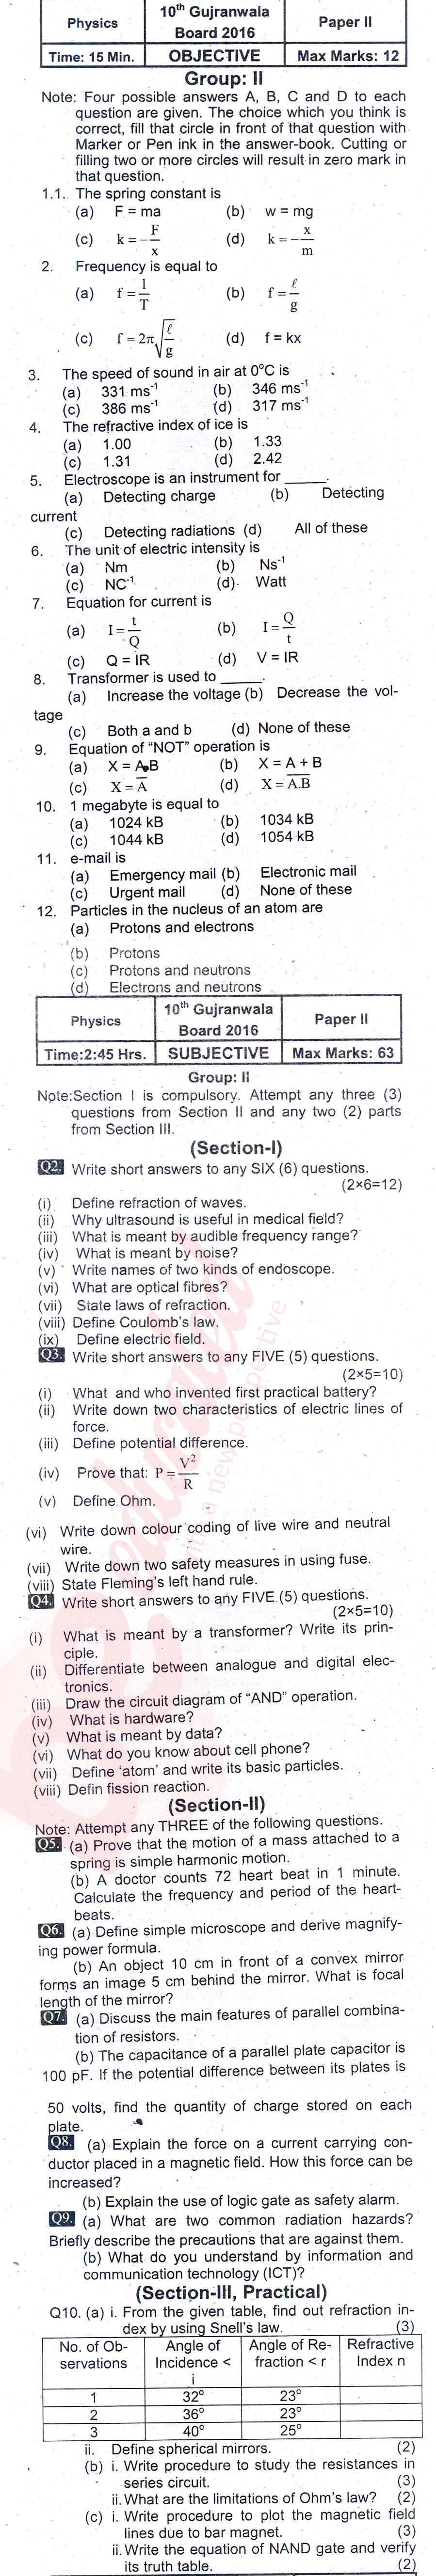 """physics english term papers A/l past exam papers and answers"""" admin says: may 1, 2011 at 11:41 am  i want a/l physics past papers since 1990 please send me it  reply sahan says: july 31, 2016 at 10:32 pm  can u please send me the english term test papers of colombo school (a/l papers) reply mookapillai muventhen says: november 20, 2015 at 7:53 am."""